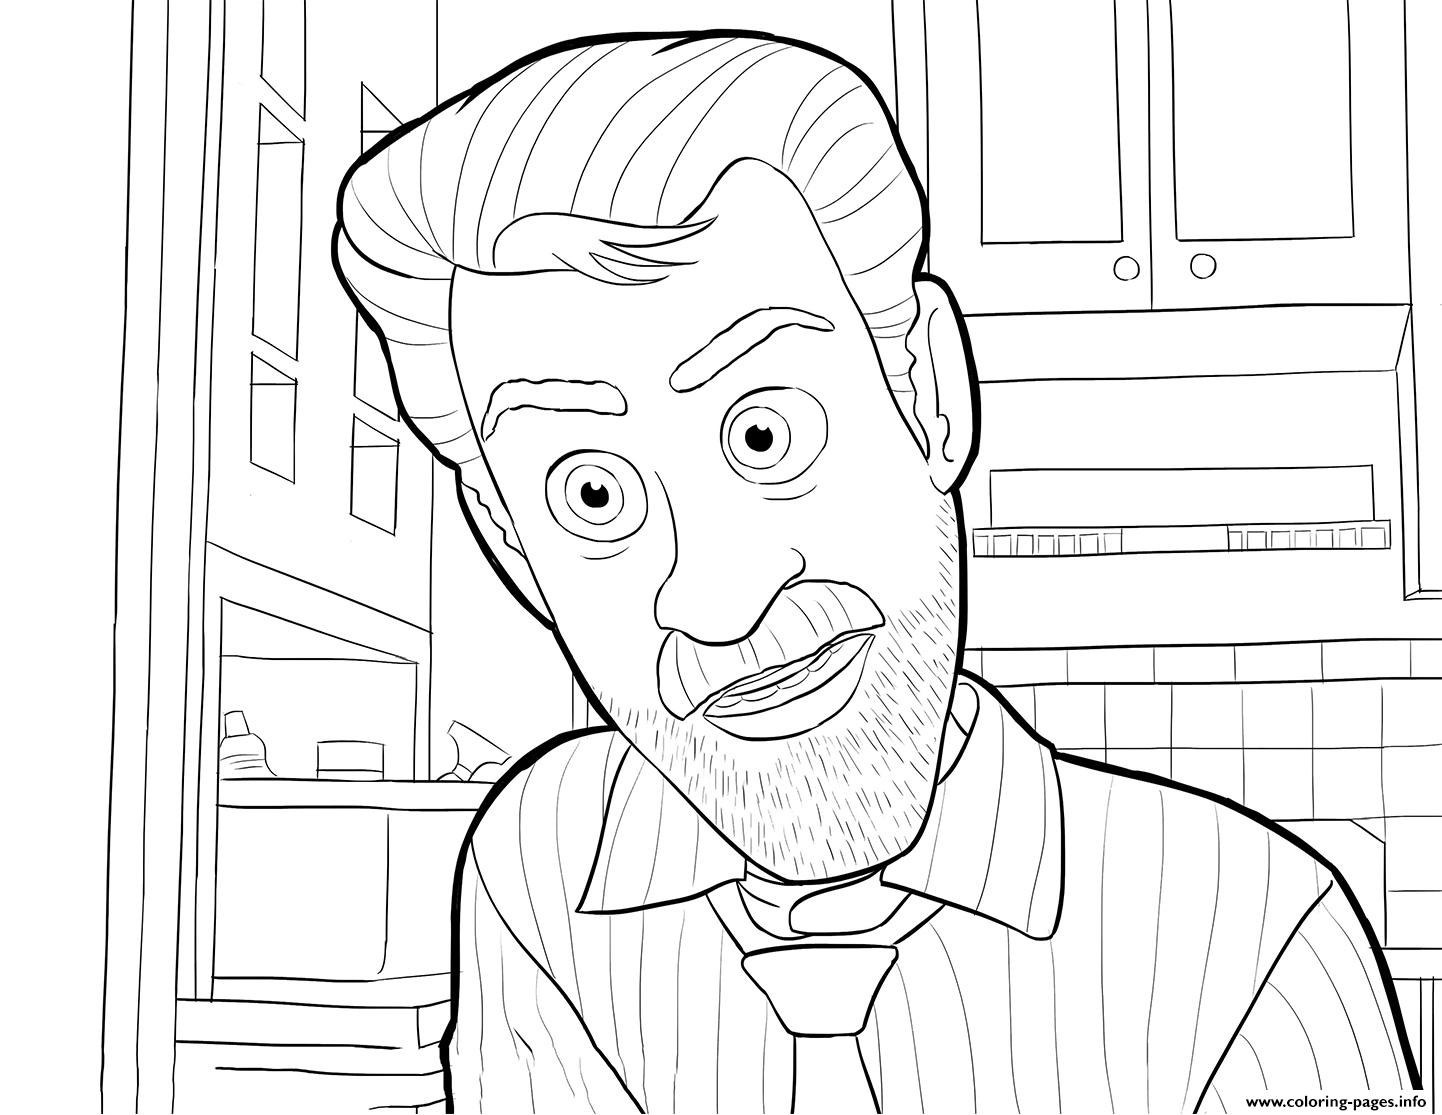 Riley Dad Inside Out Coloring Pages